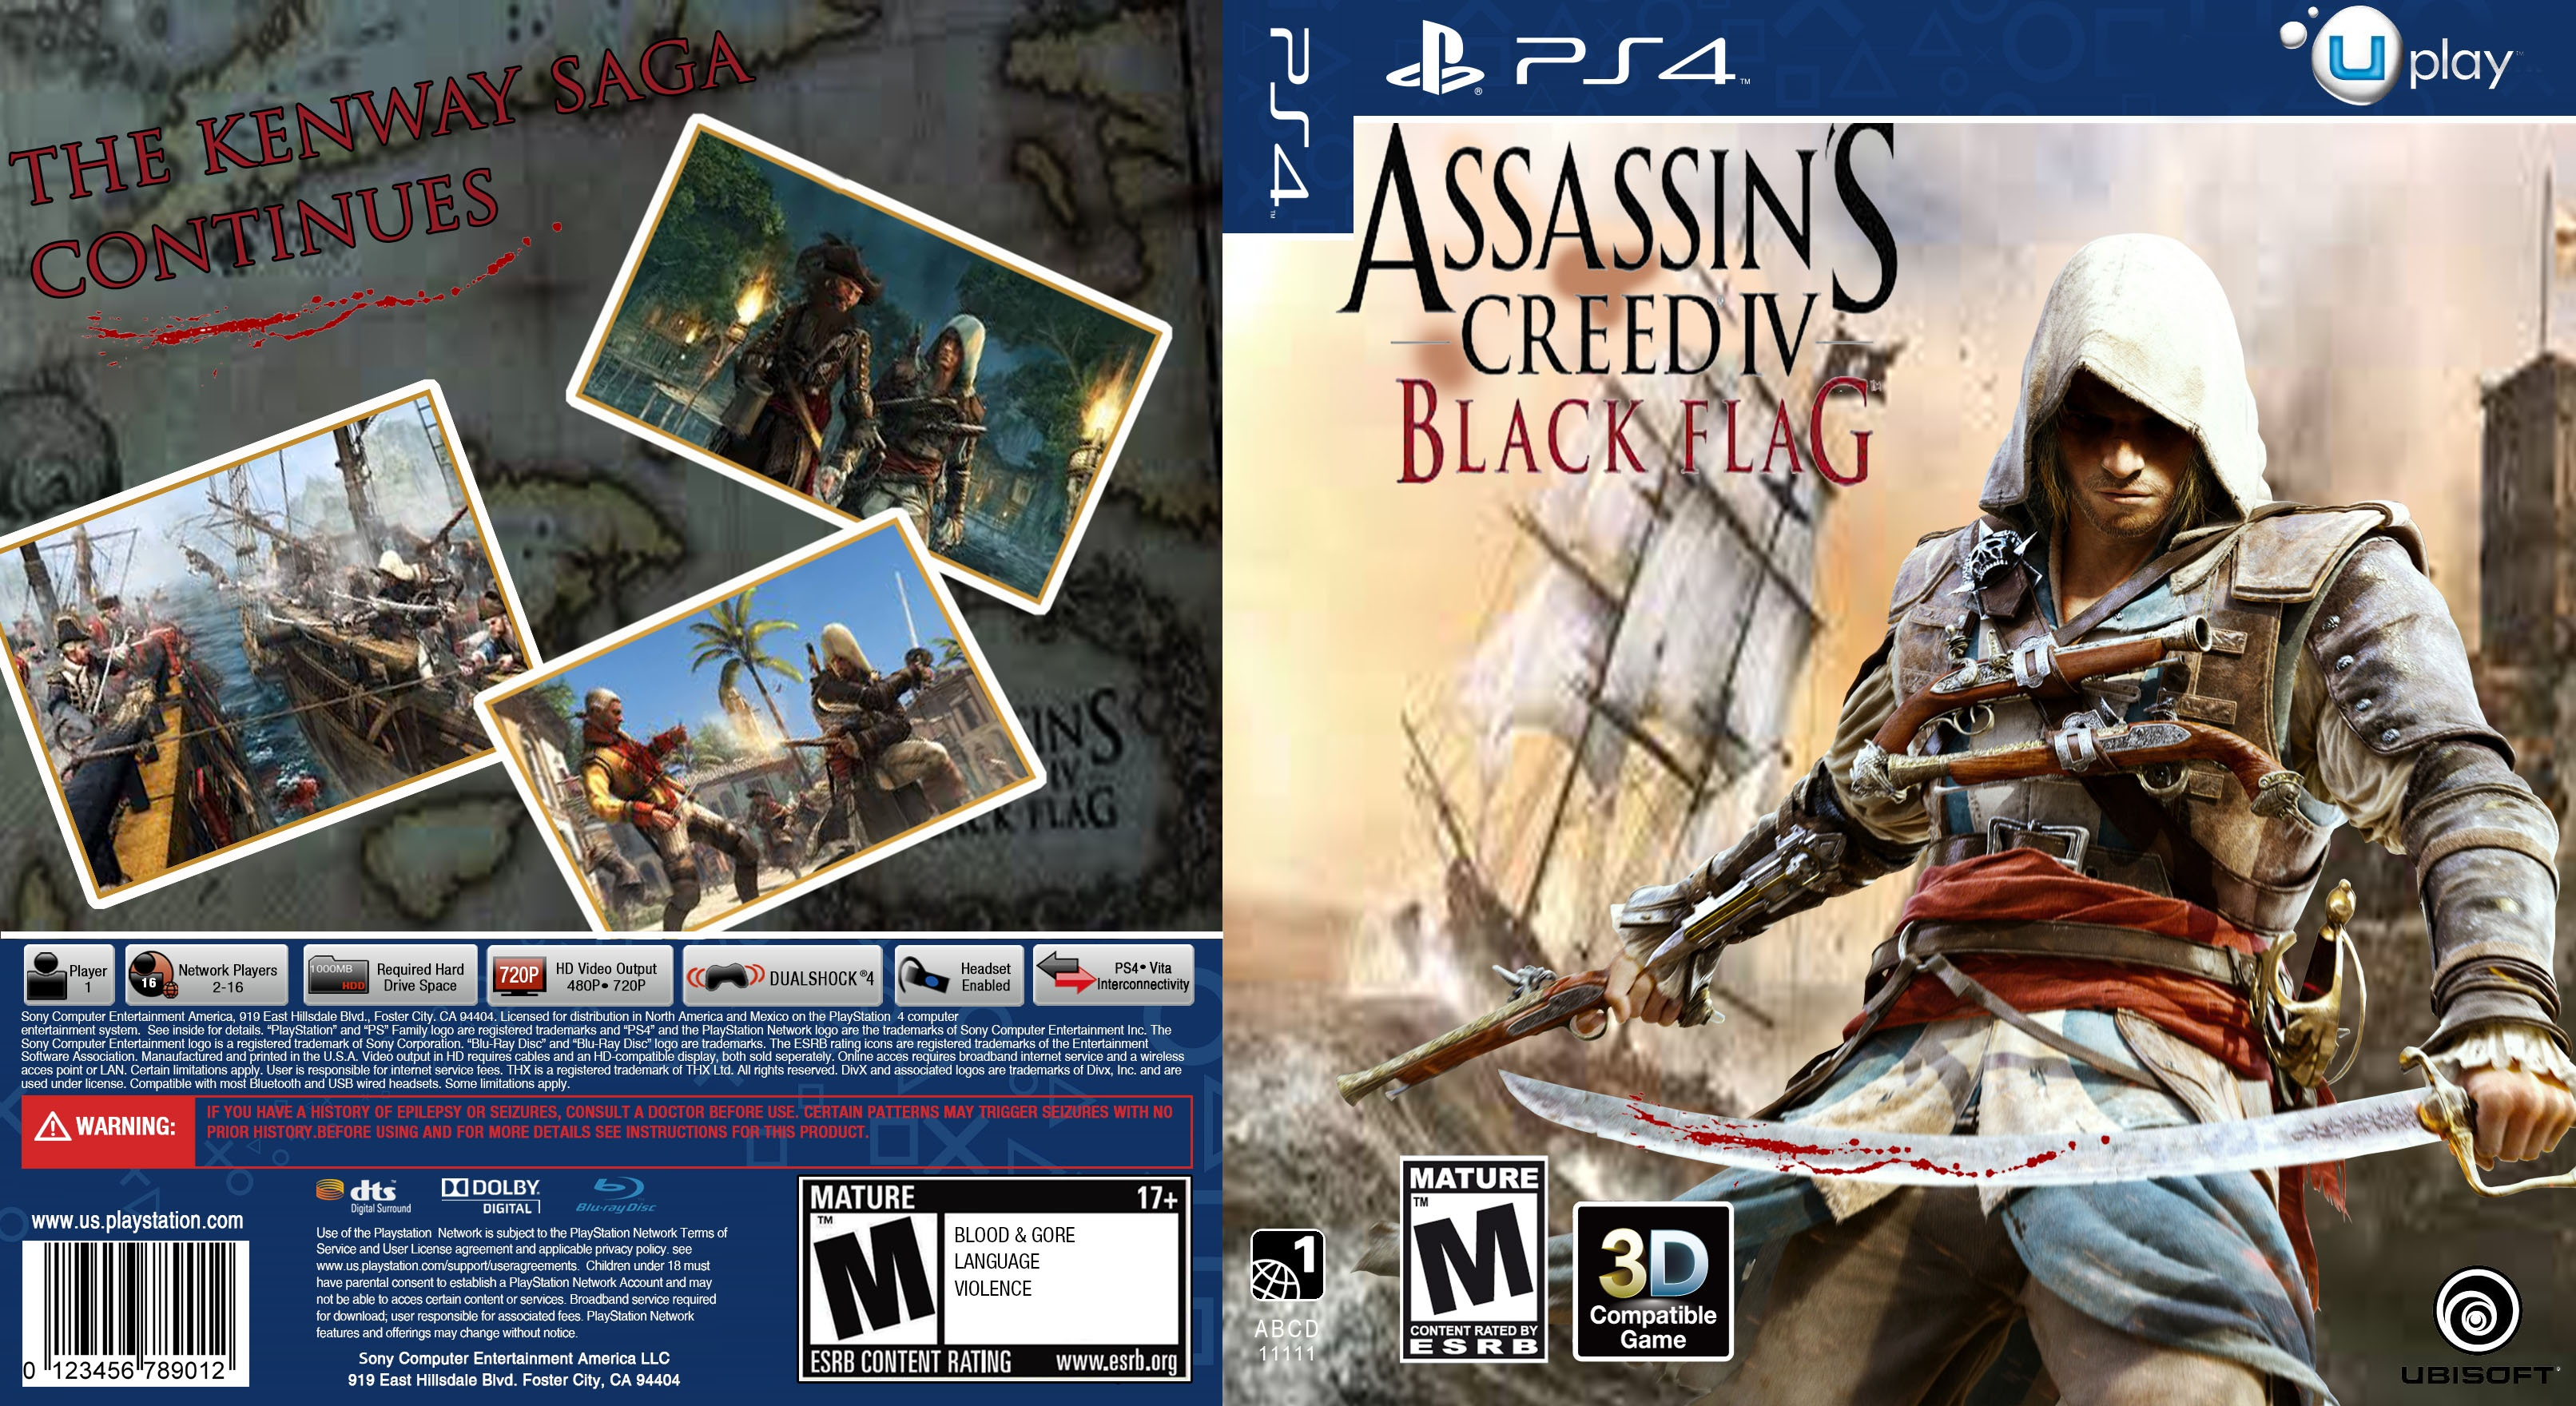 Assassins Creed Iv Black Flag Playstation 4 Box Art Cover By Dorbz